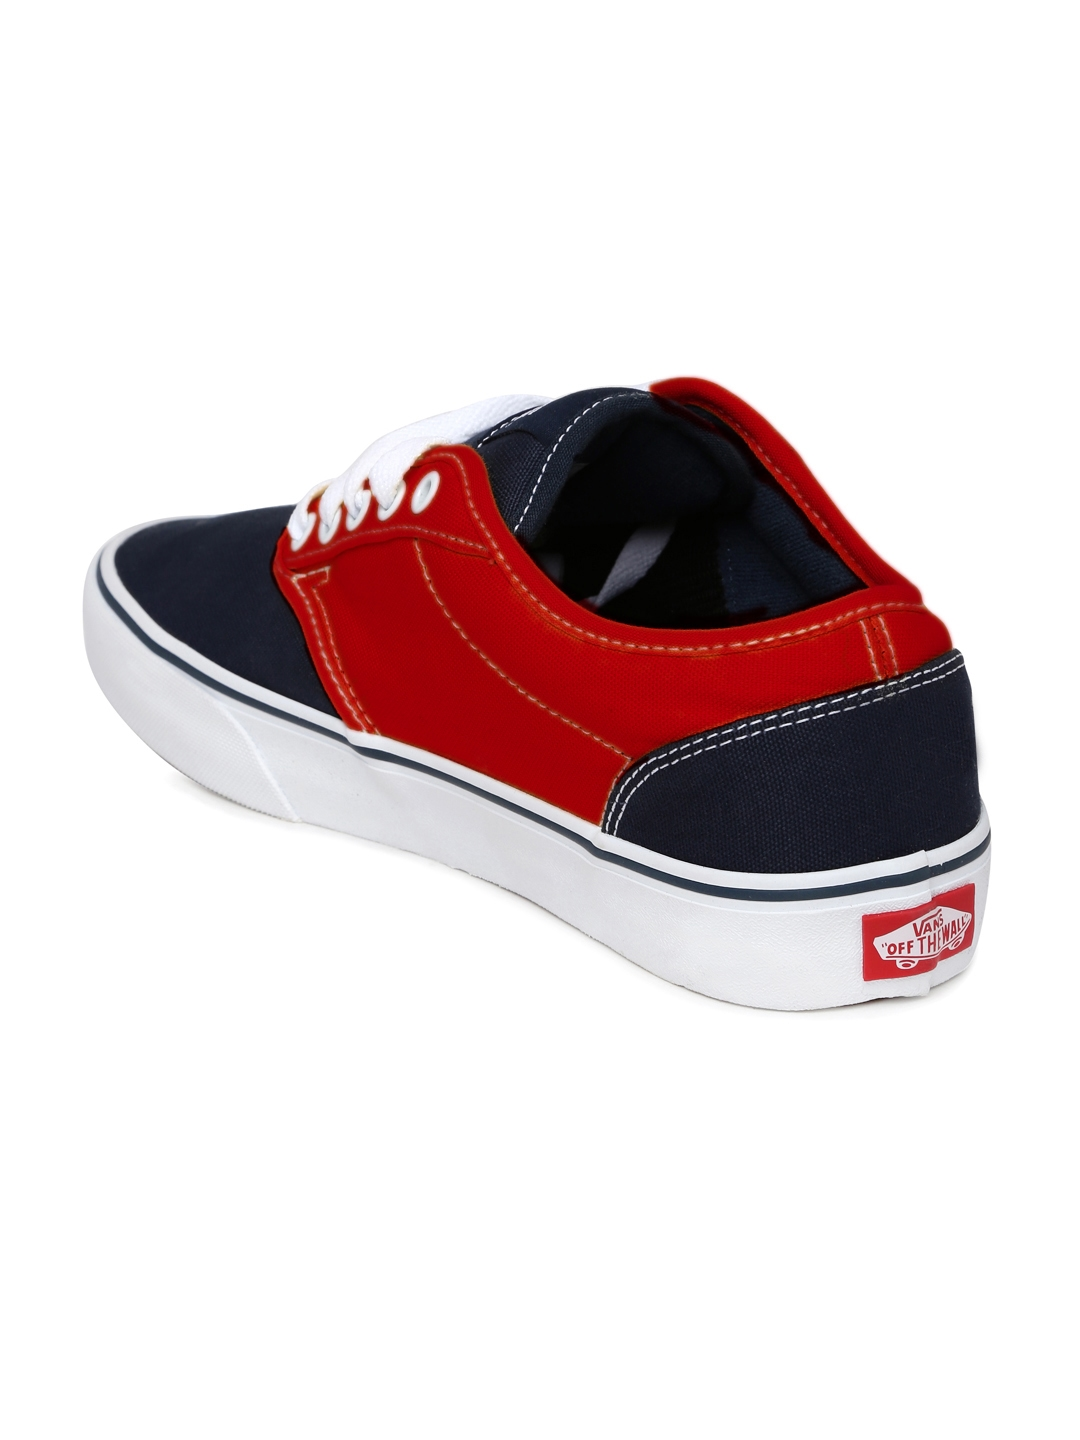 6b69479e7130f3 Buy Vans Men Black   Red Colourblocked Sneakers - Casual Shoes for ...